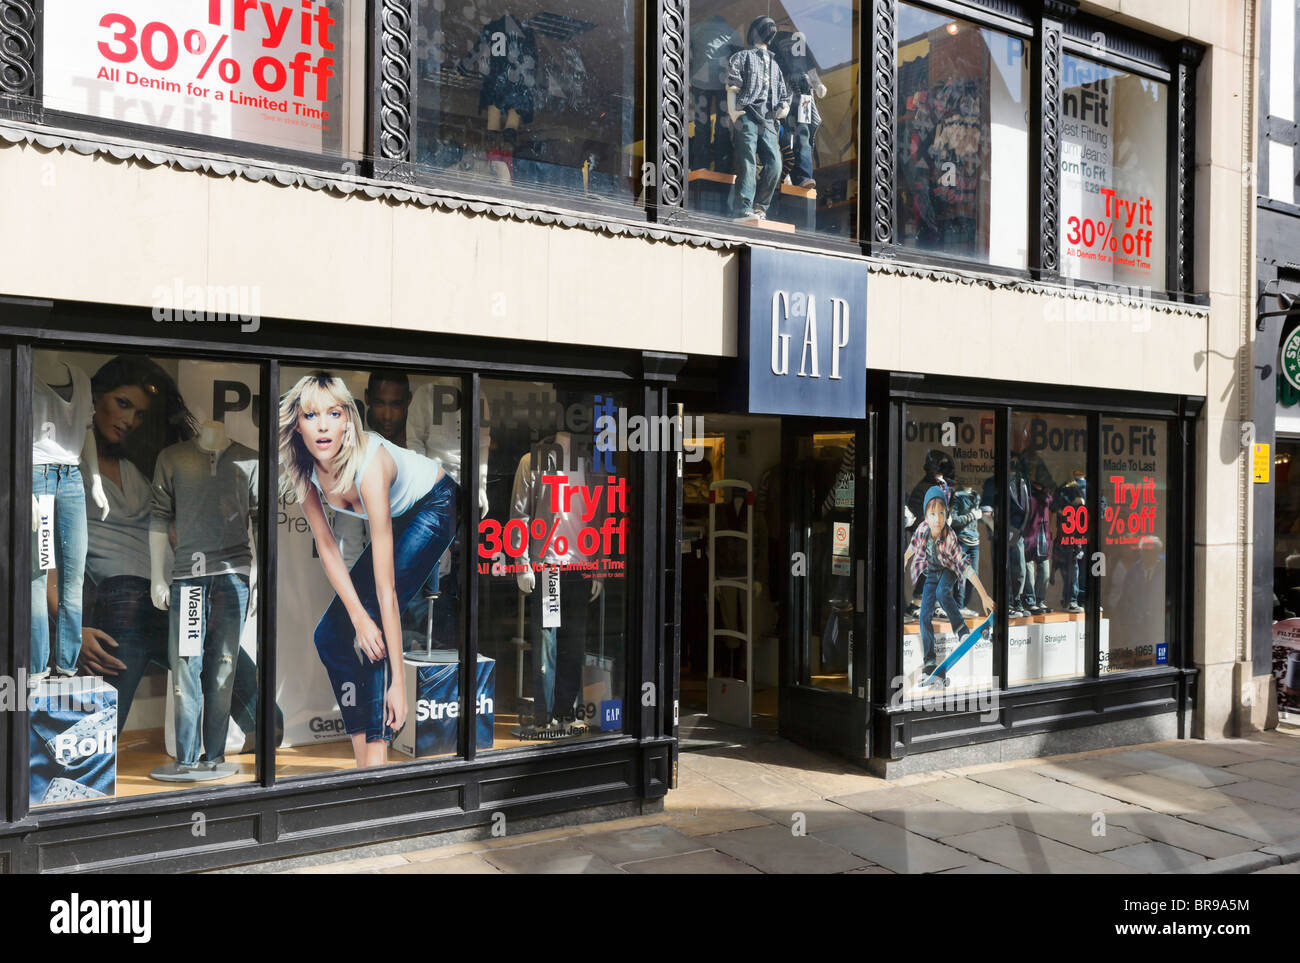 GAP store in Chester town centre, Cheshire, England, UK - Stock Image